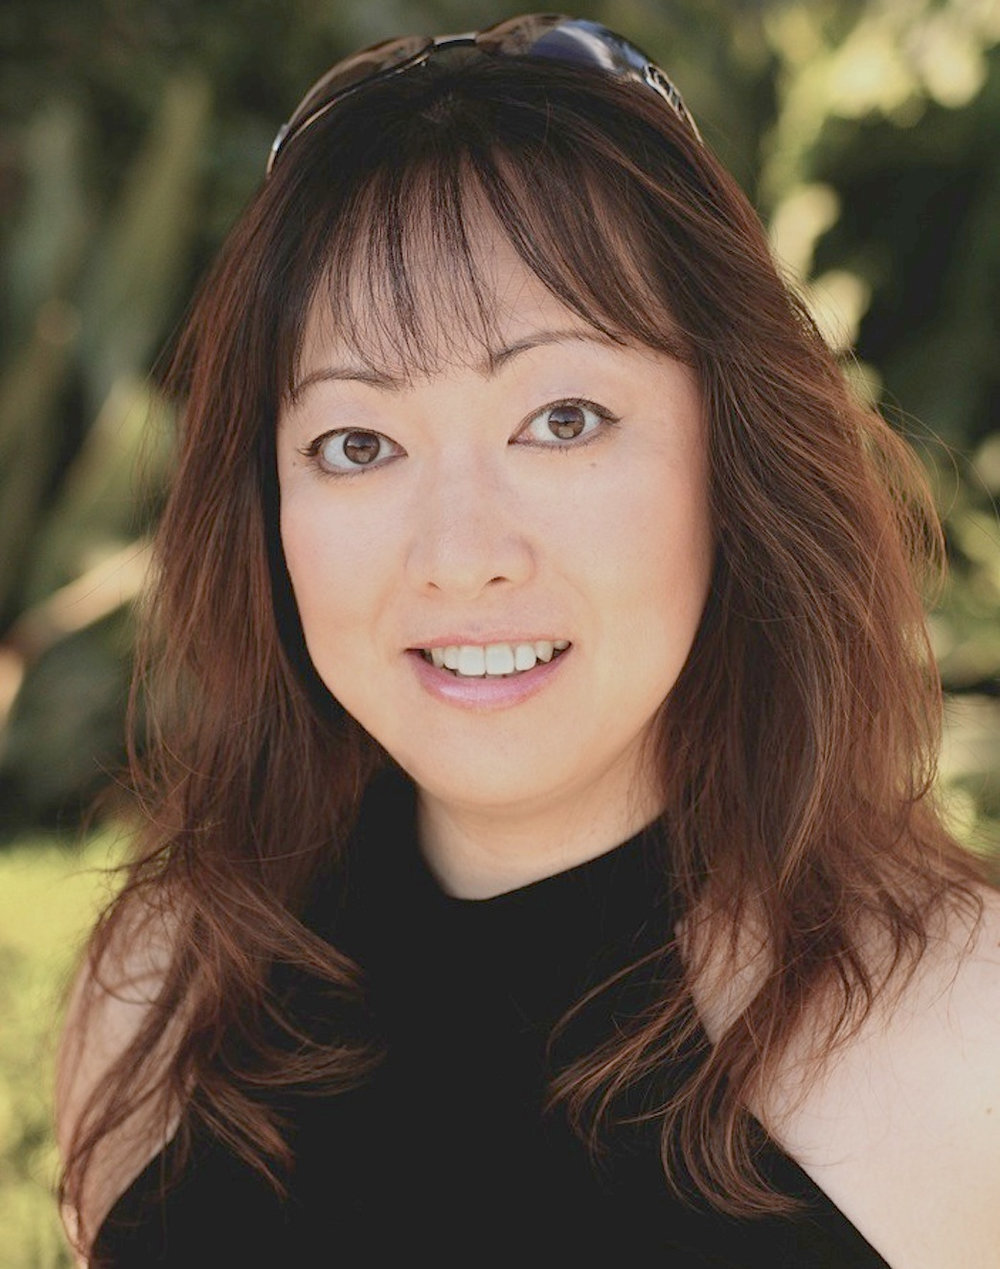 """YUKARI BLACK  From the age of 3, Yukari has been on stage as an actress, singer, dancer and songwriter. She has a B.A. from Tamagawa University in Tokyo. Her musical theatre credits in the U.S. include Lady Thiang in The King and I, Solange La Fitte in Stephen Sondheim's Follies, and Sakiko in Nadeshiko. Her film credits include the best film winner, Letters from Iwo Jima, and Flags of our Fathers, where she had the opportunity to work directly with Clint Eastwood. Yukari has released her original music CD, """"TYT"""", a powerful collection of compositions with a strong Japanese cultural influence. She has performed Japanese classical songs, Jazz and many of her compositions live at various music functions in the U.S. and Japan. In 2014, Yukari became the executive producer and director of Kuro Productions."""